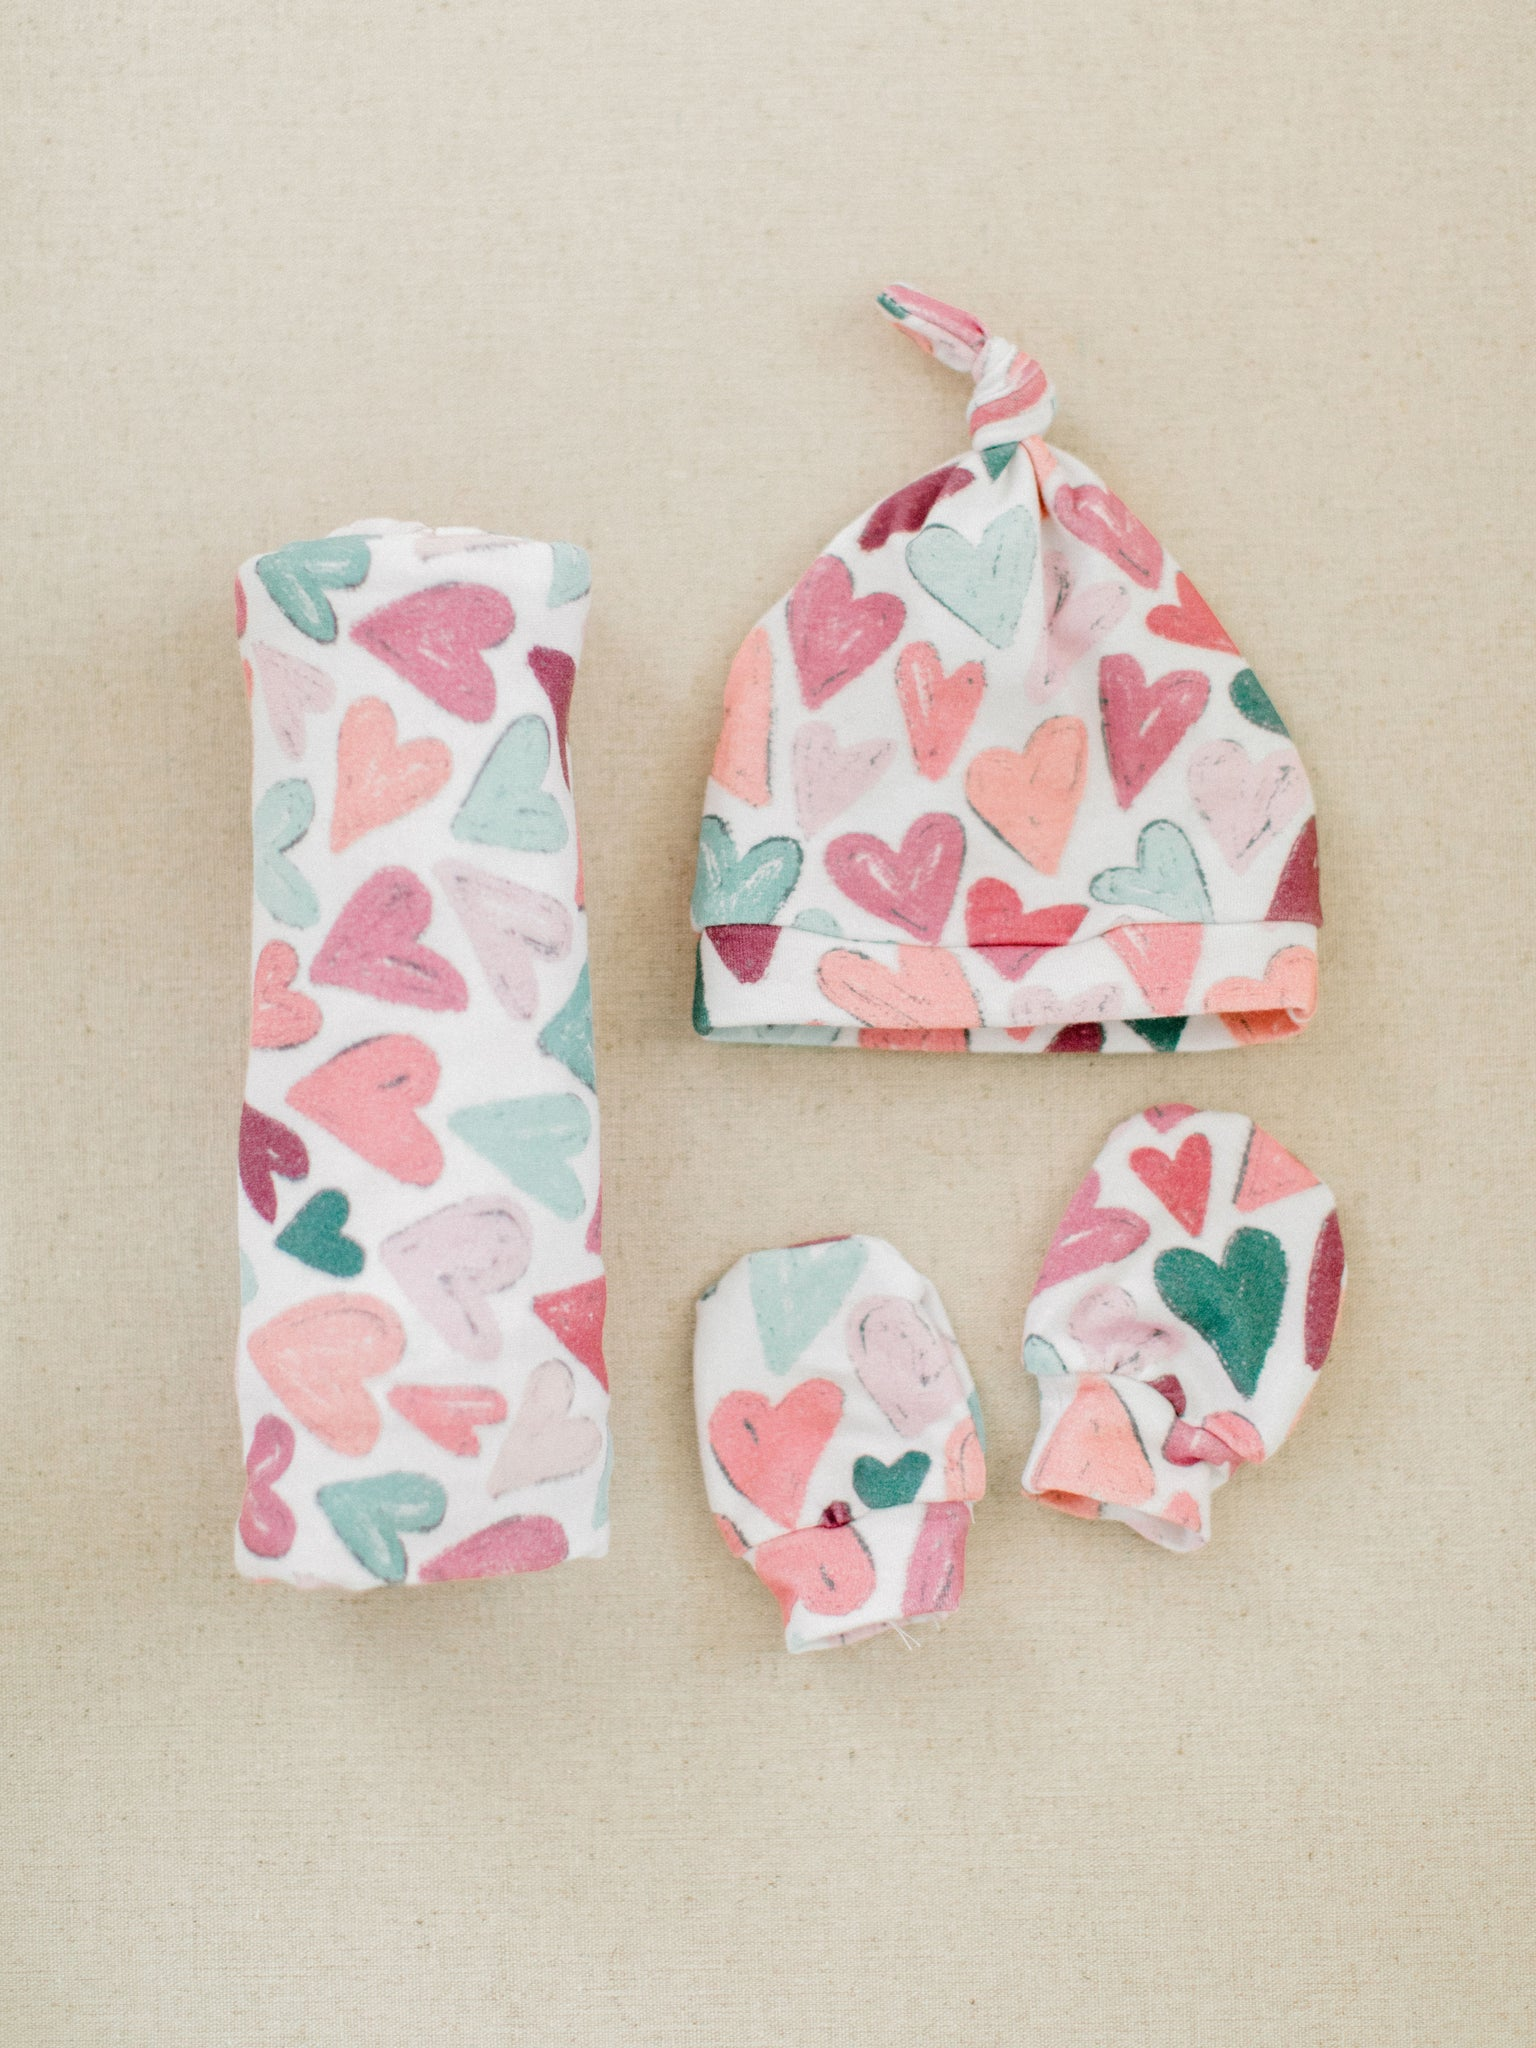 heart-print-swaddle-newborn-set-hat-mittens-for-kids-handmade-childrens-boutique